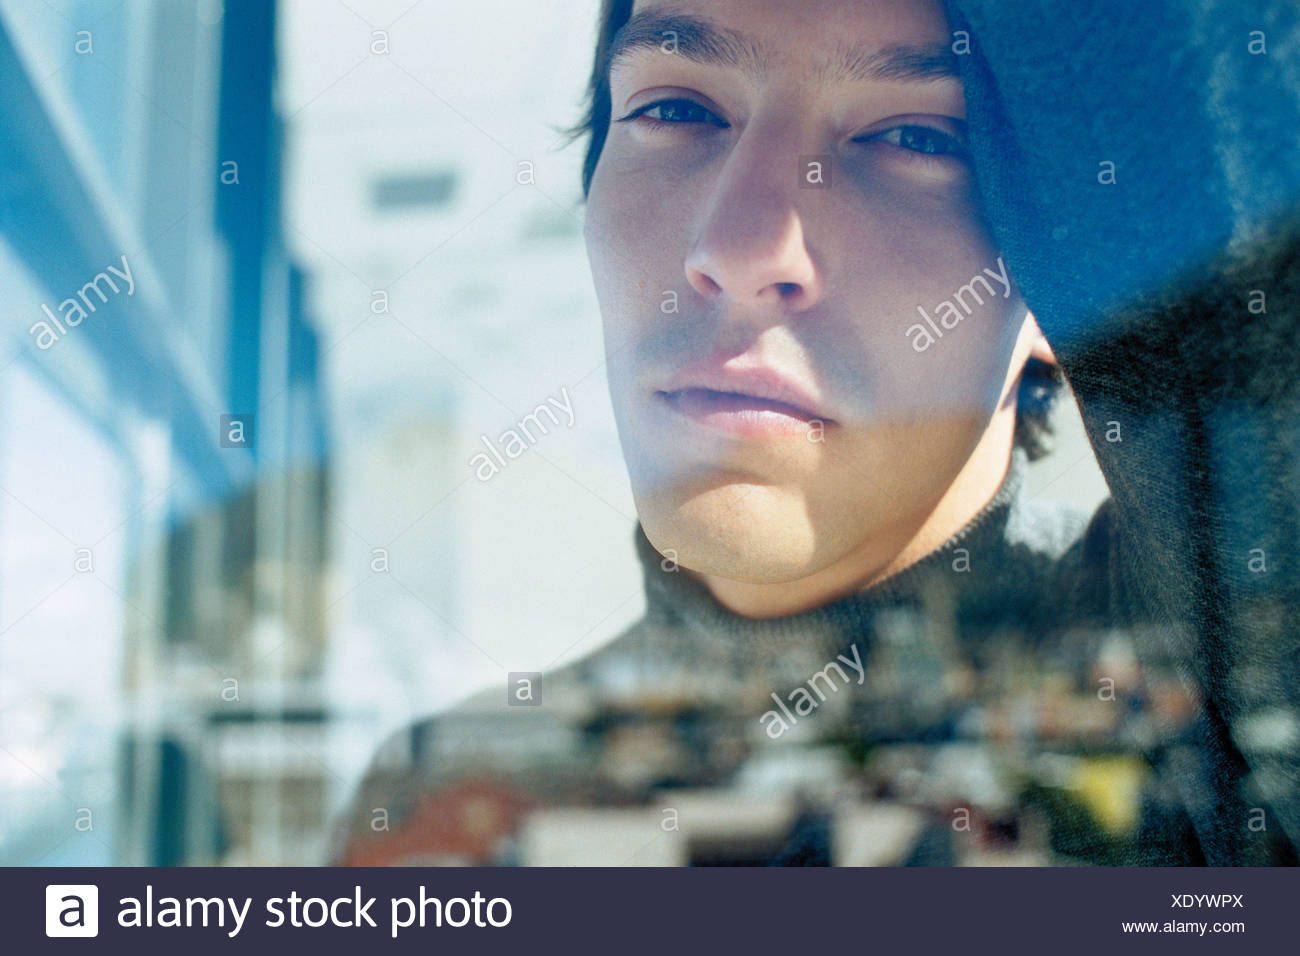 Troubled man - Stock Image